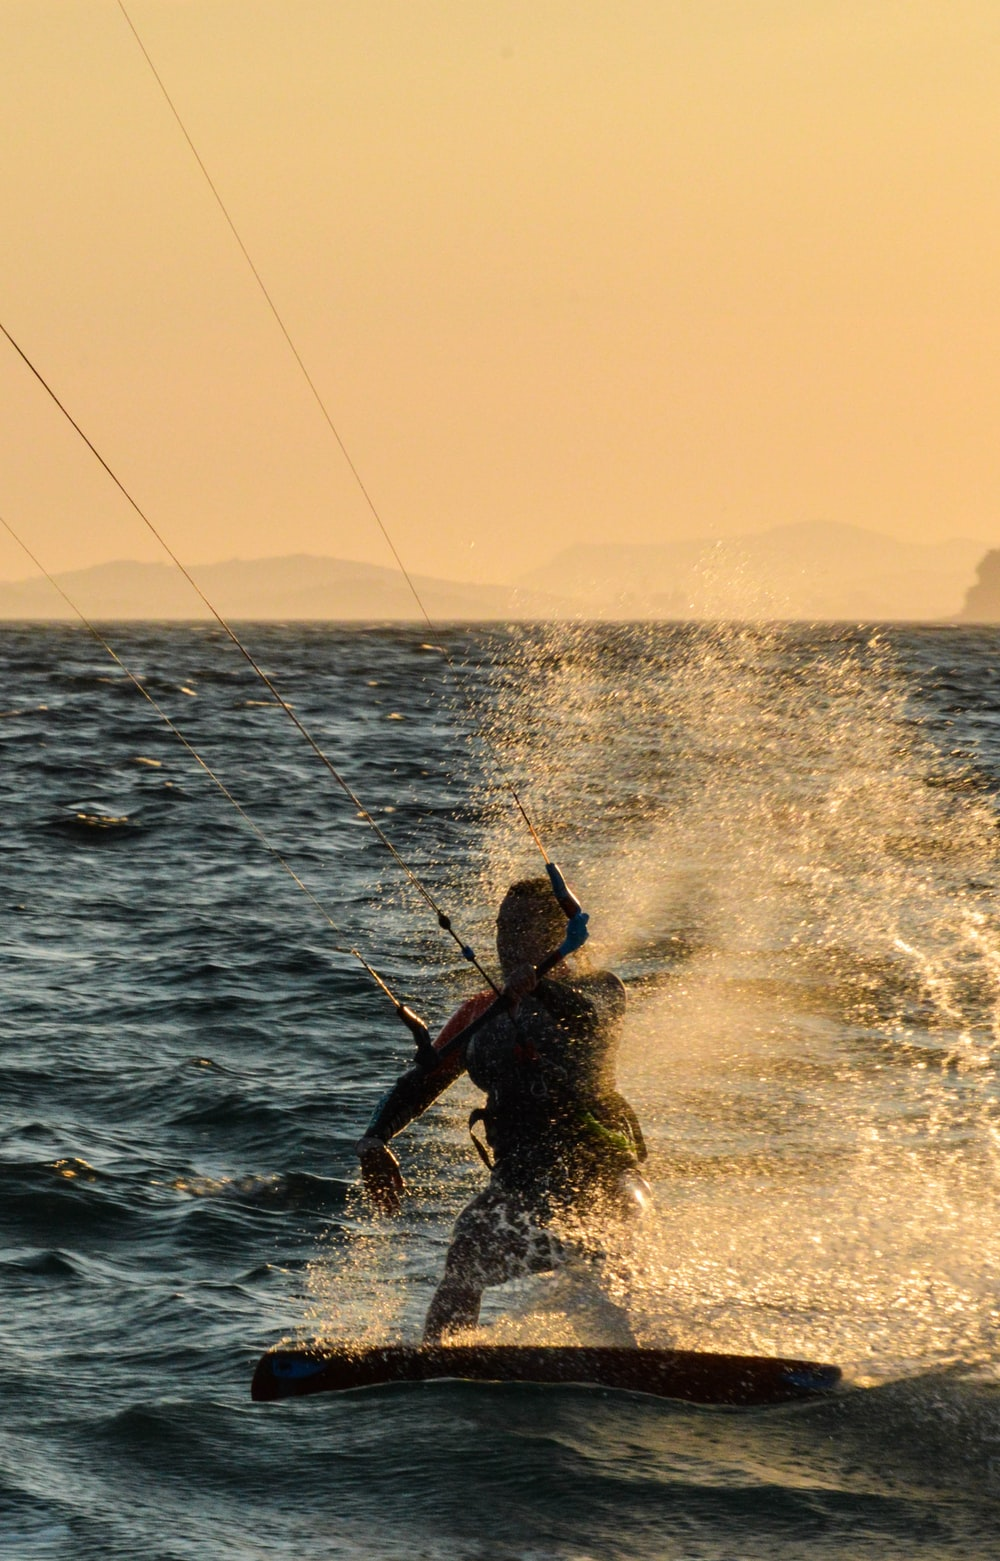 man in black wet suit holding fishing rod on sea during daytime